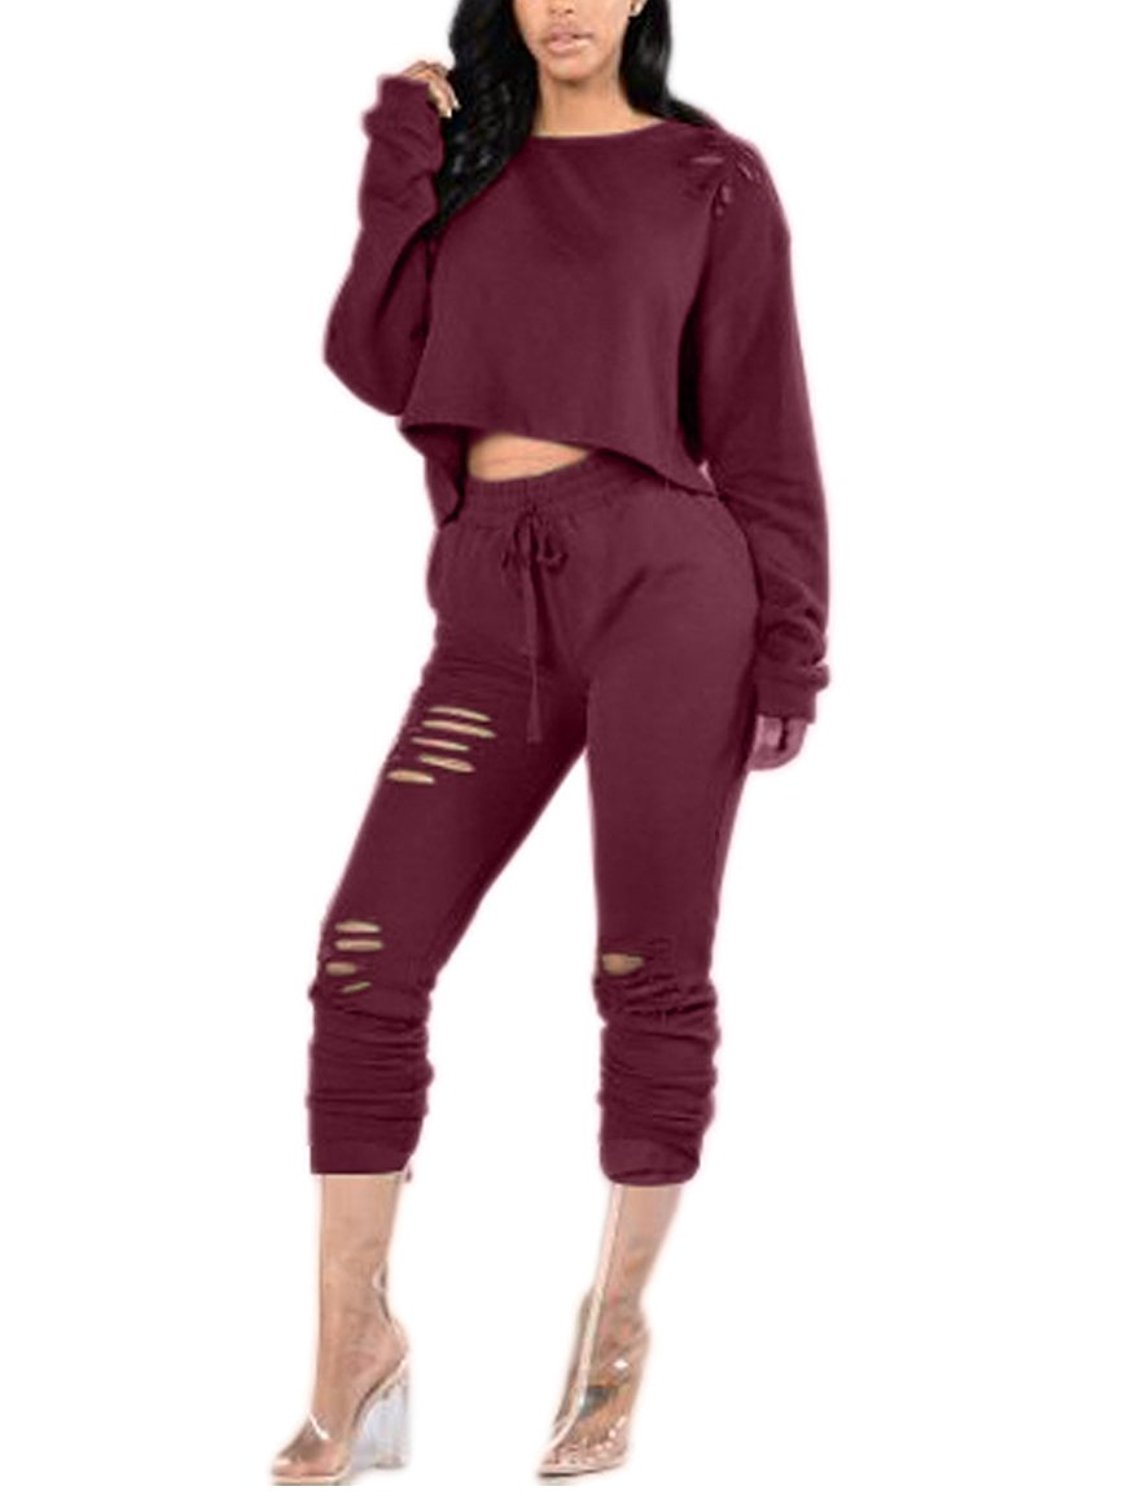 Doris Women's Savage Mode Crop Top and Pants Ripped Sweatshirt Set at Amazon Women's Clothing store: